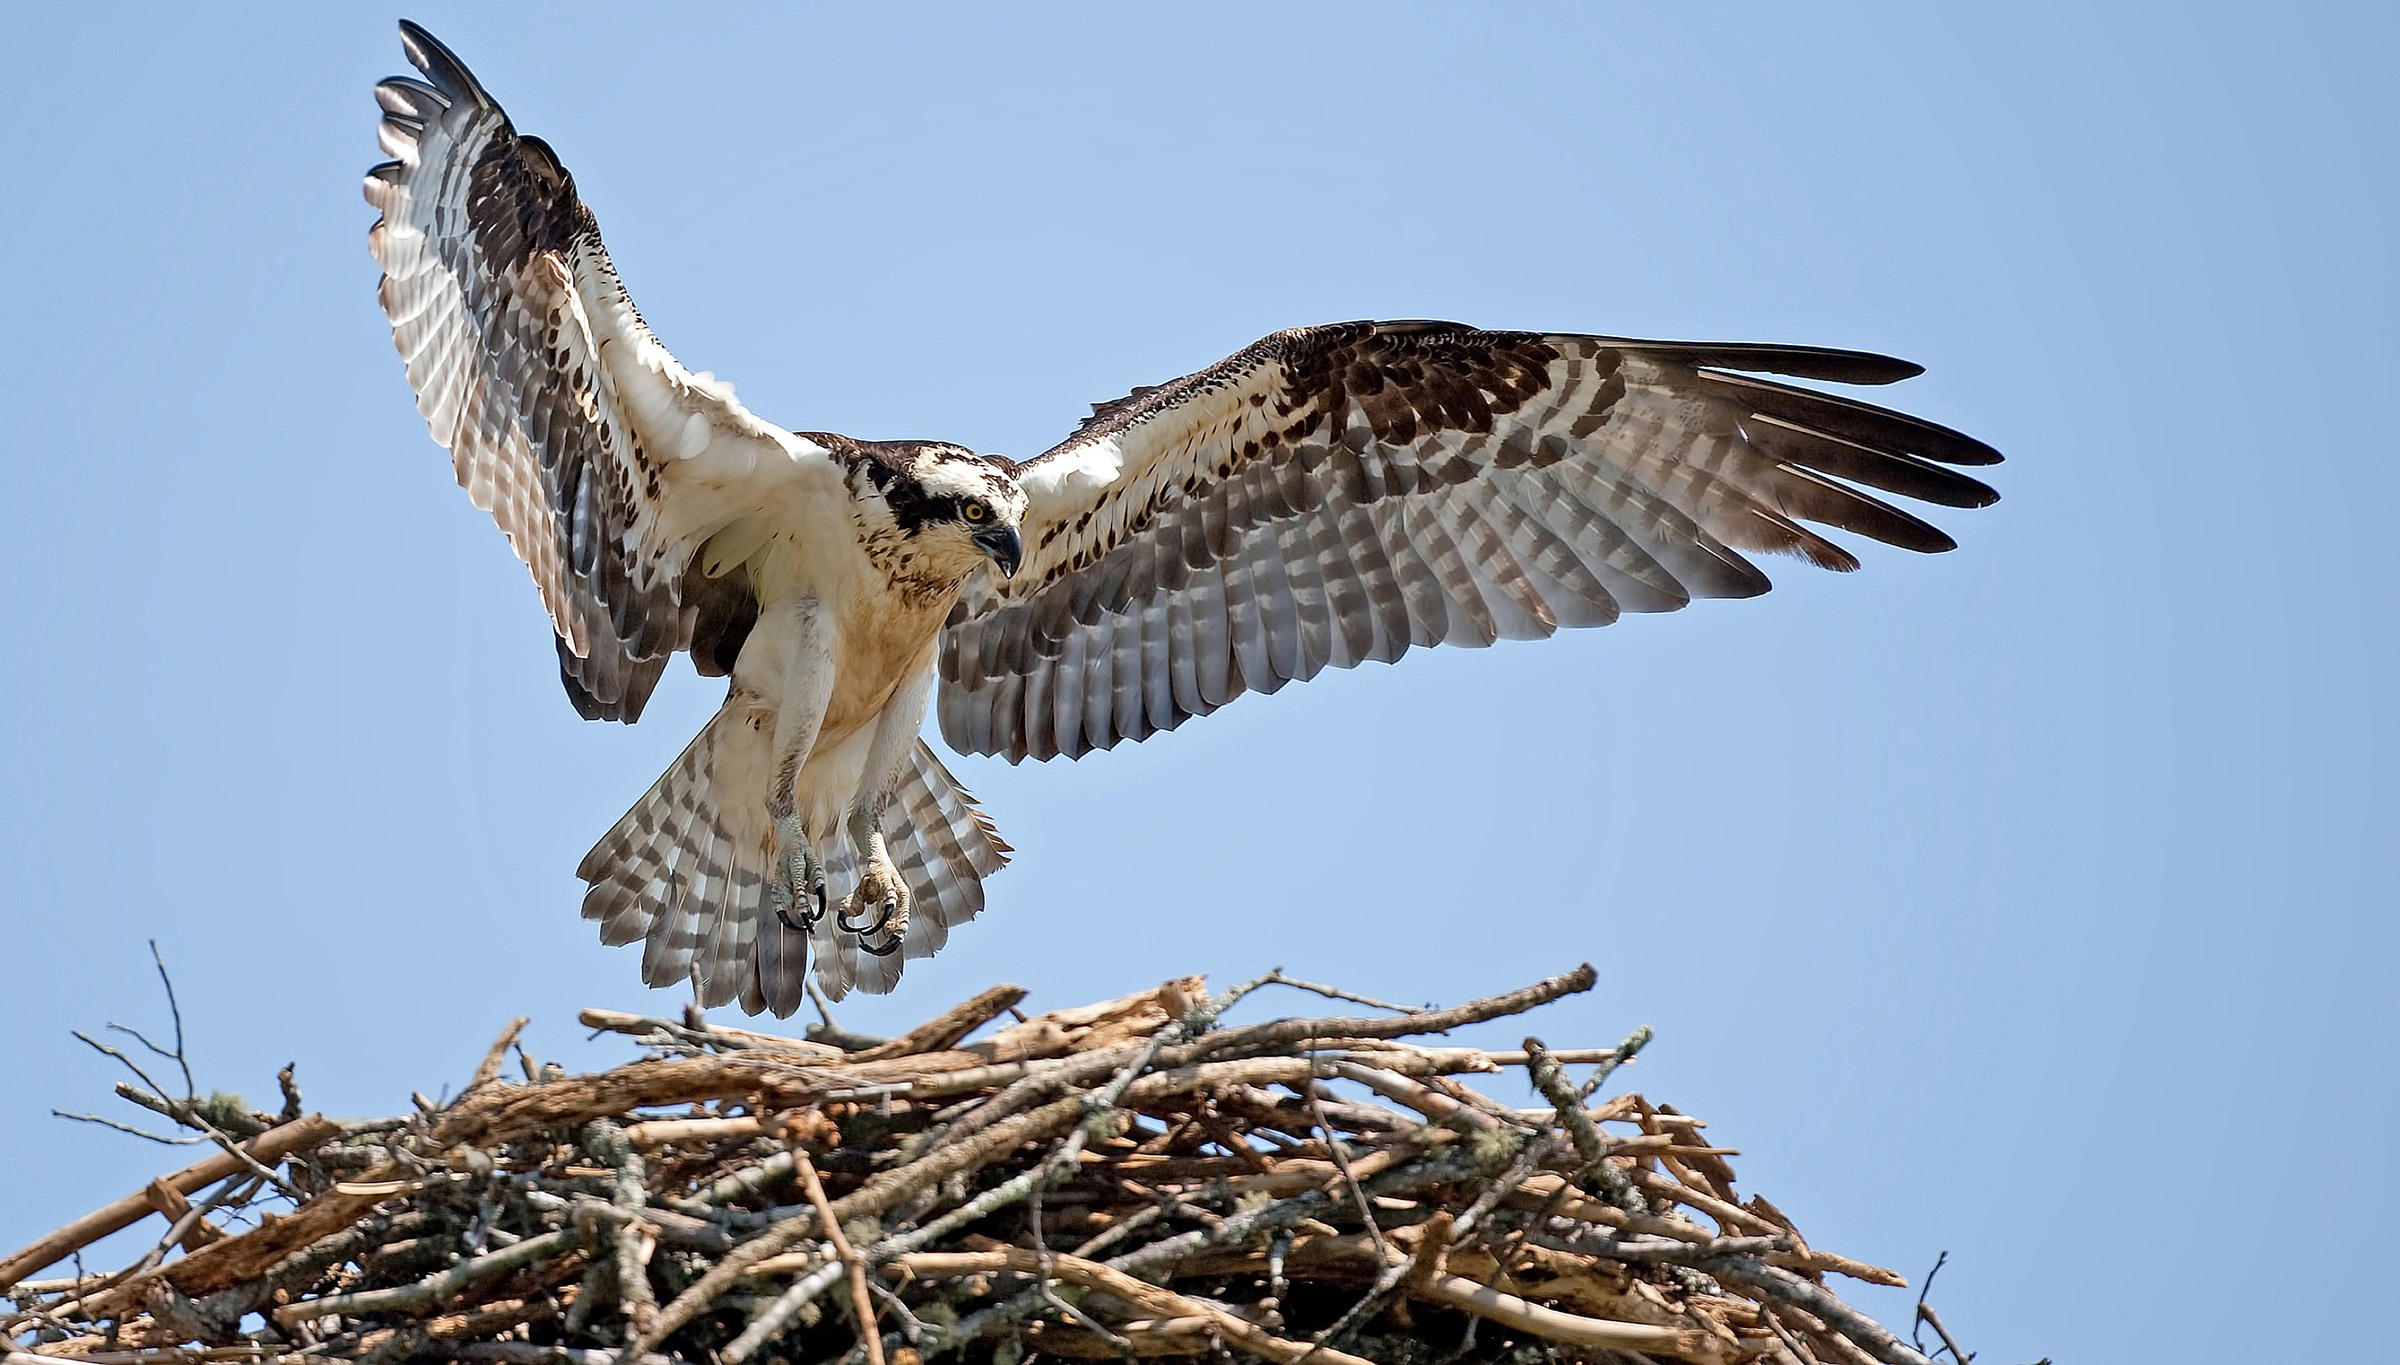 An osprey descends on its nest. (Photograph by Bob Howdeshell/Wiki Commons)